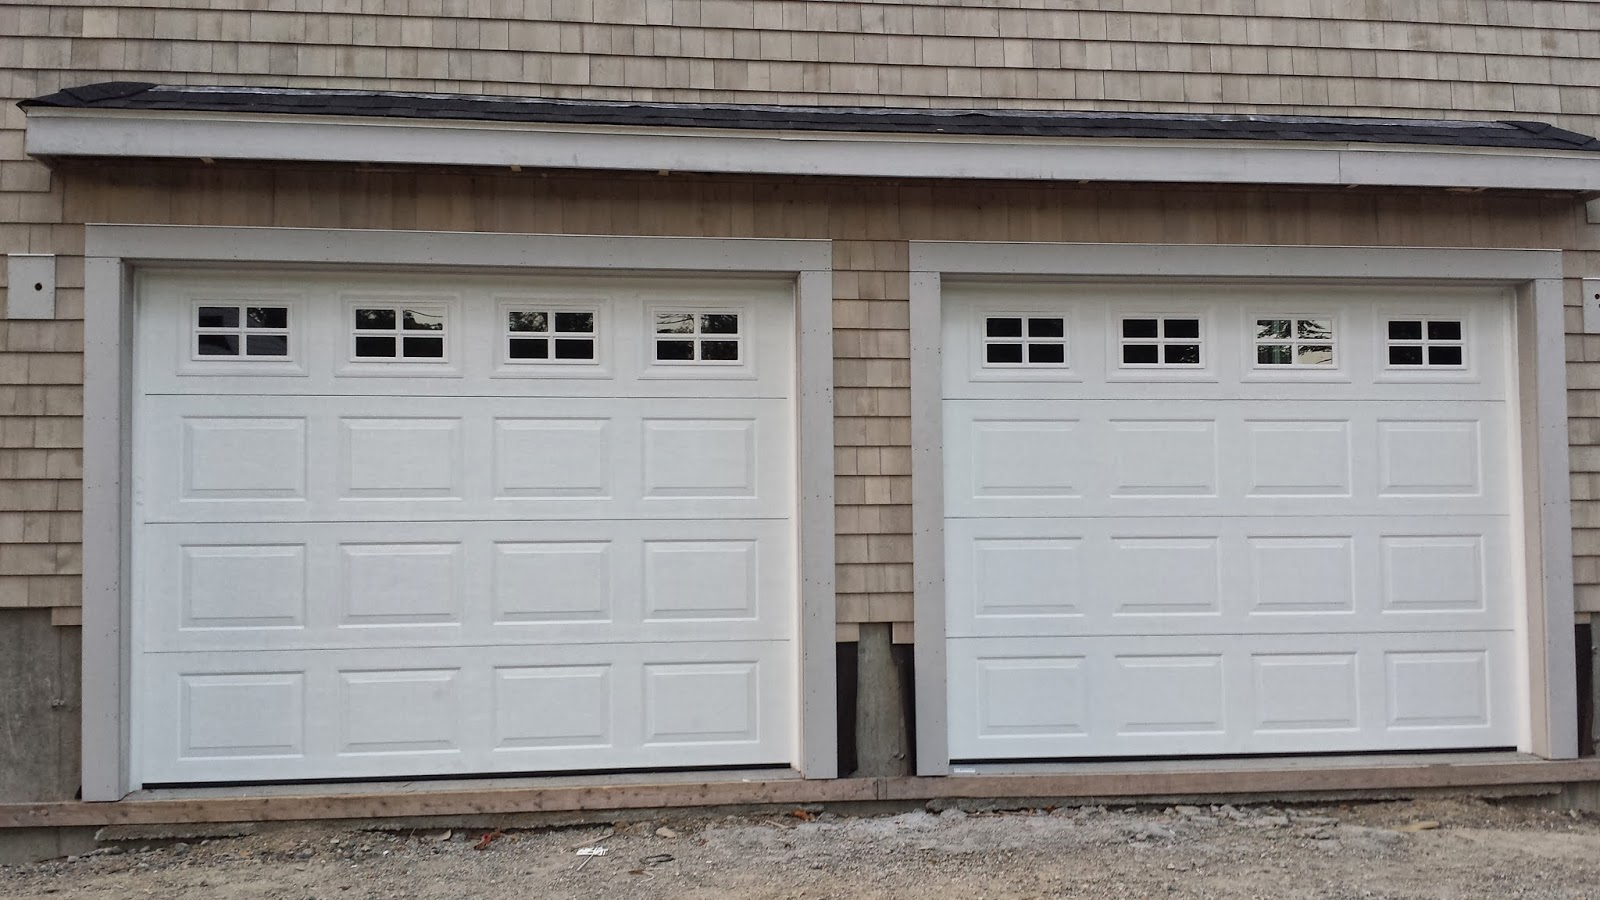 900 #5A4F45 Garage Doors Are In wallpaper Garage Doors Electric Opening 36051600